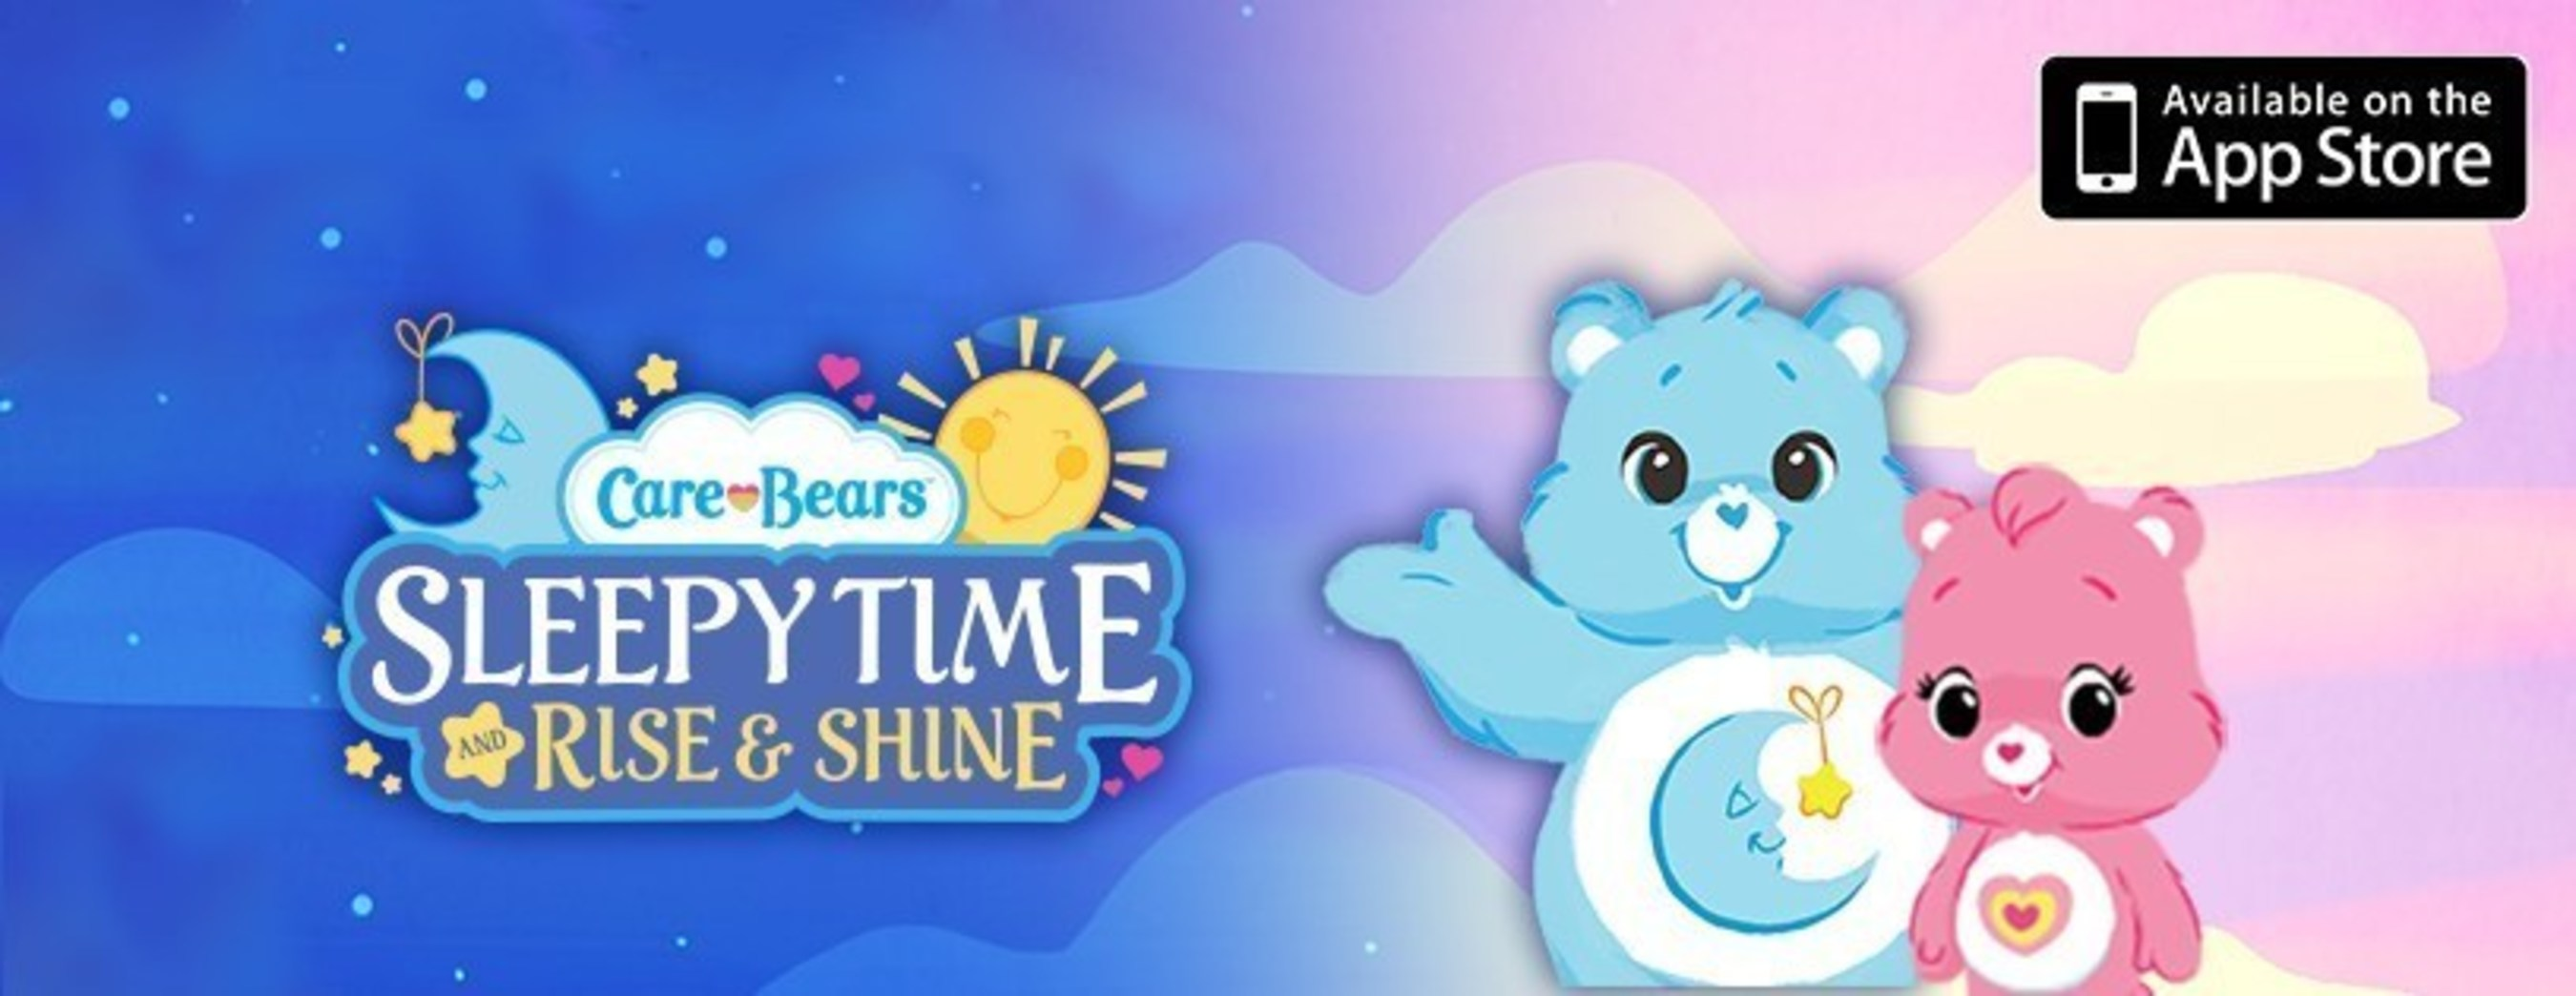 Make Bedtime And Wake Up Routines Fun With New Care Bears Sleepy